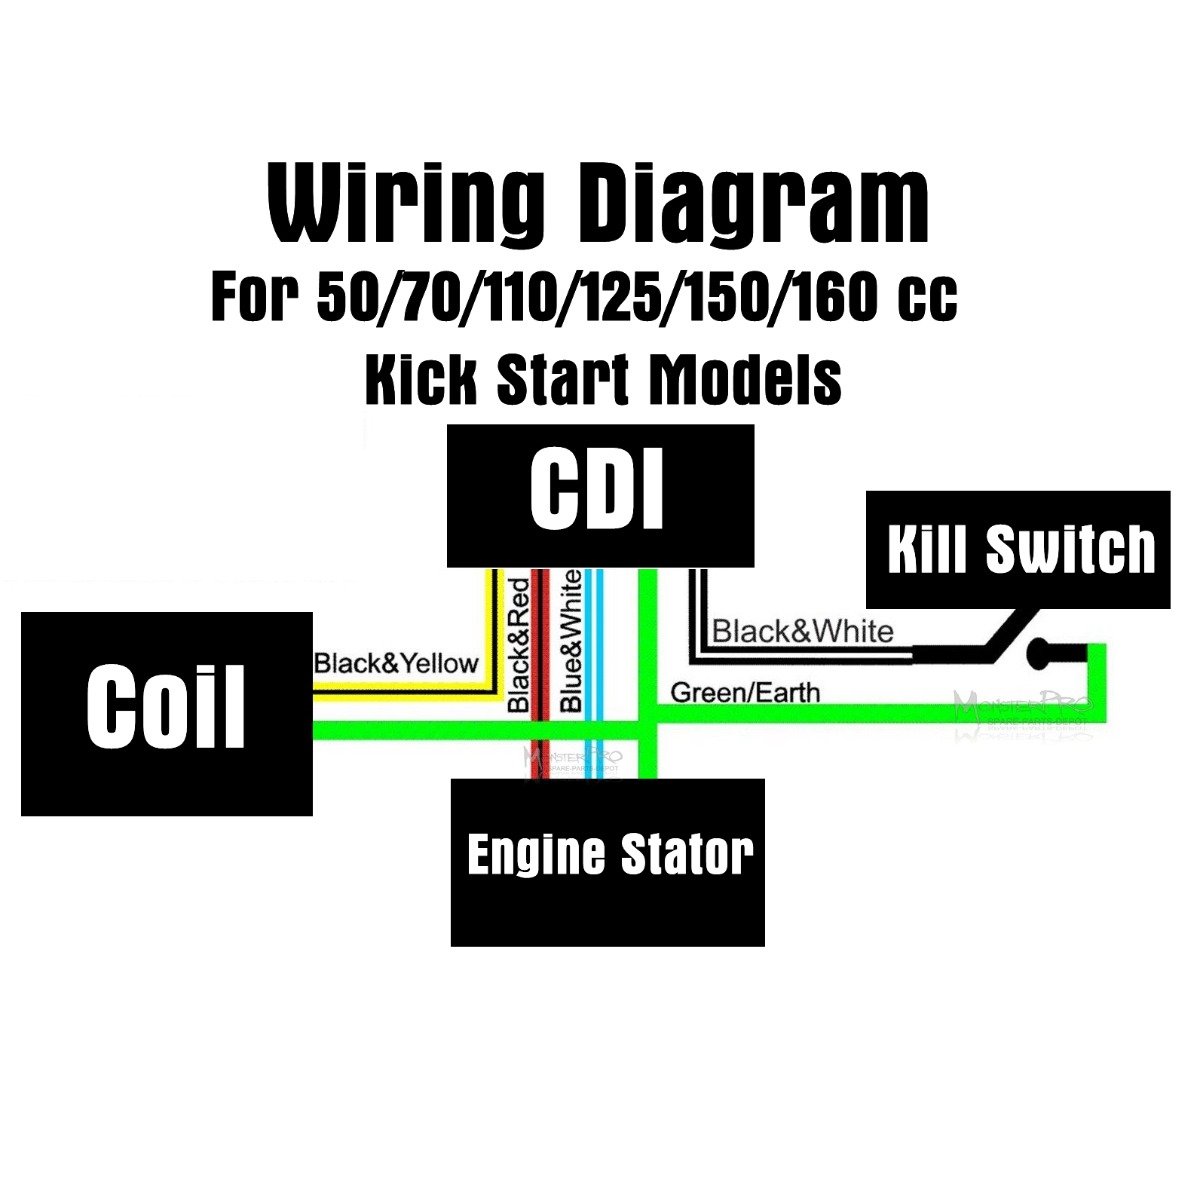 Lifan 125cc Motorcycle Mini Chopper Wiring Diagram